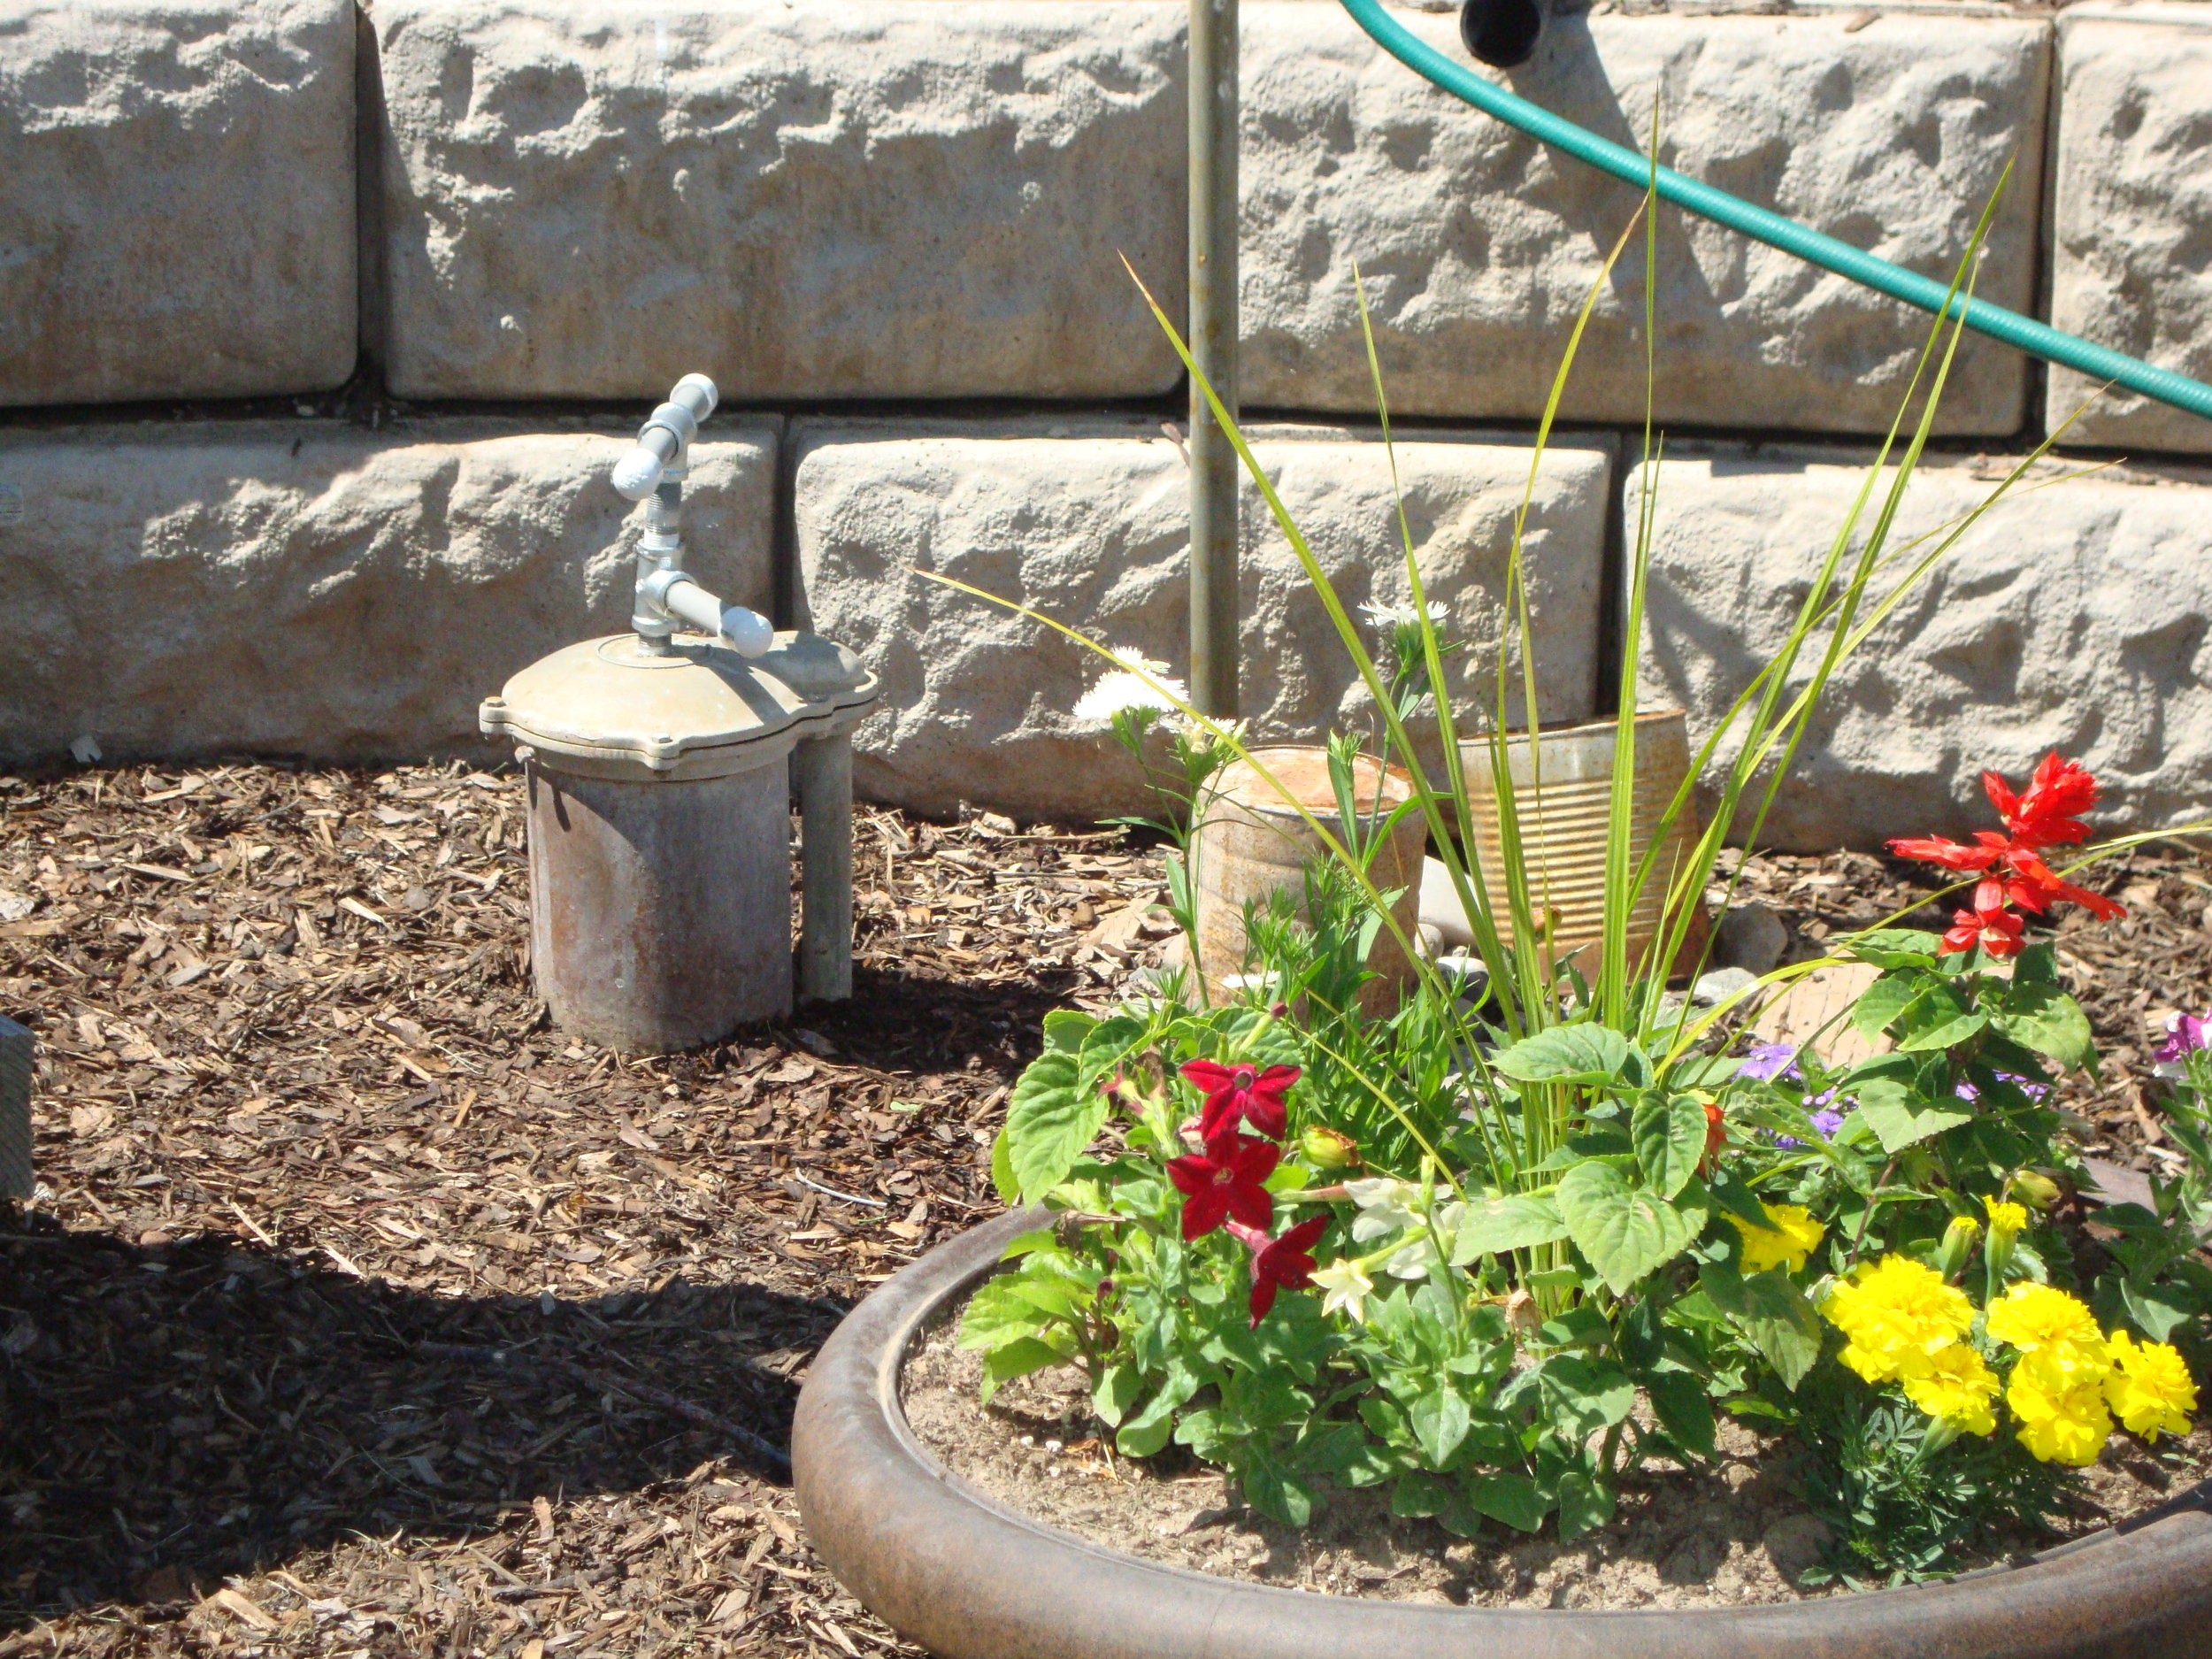 Simple, small design won't detract from landscape